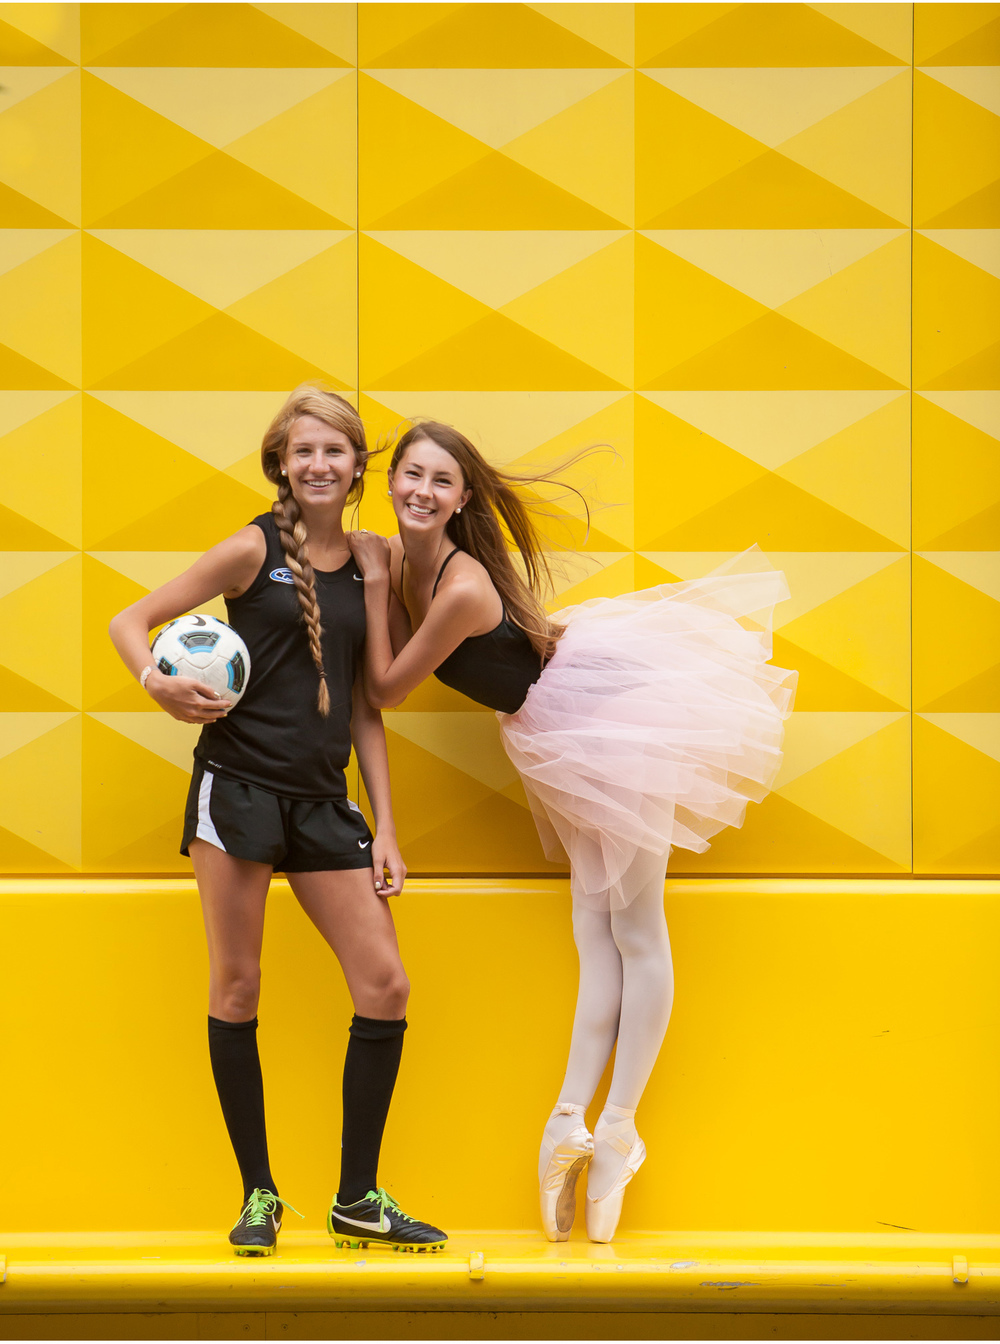 Gorgeous best friends, a soccer player and a ballerina on the infamous yellow wall in Denver!